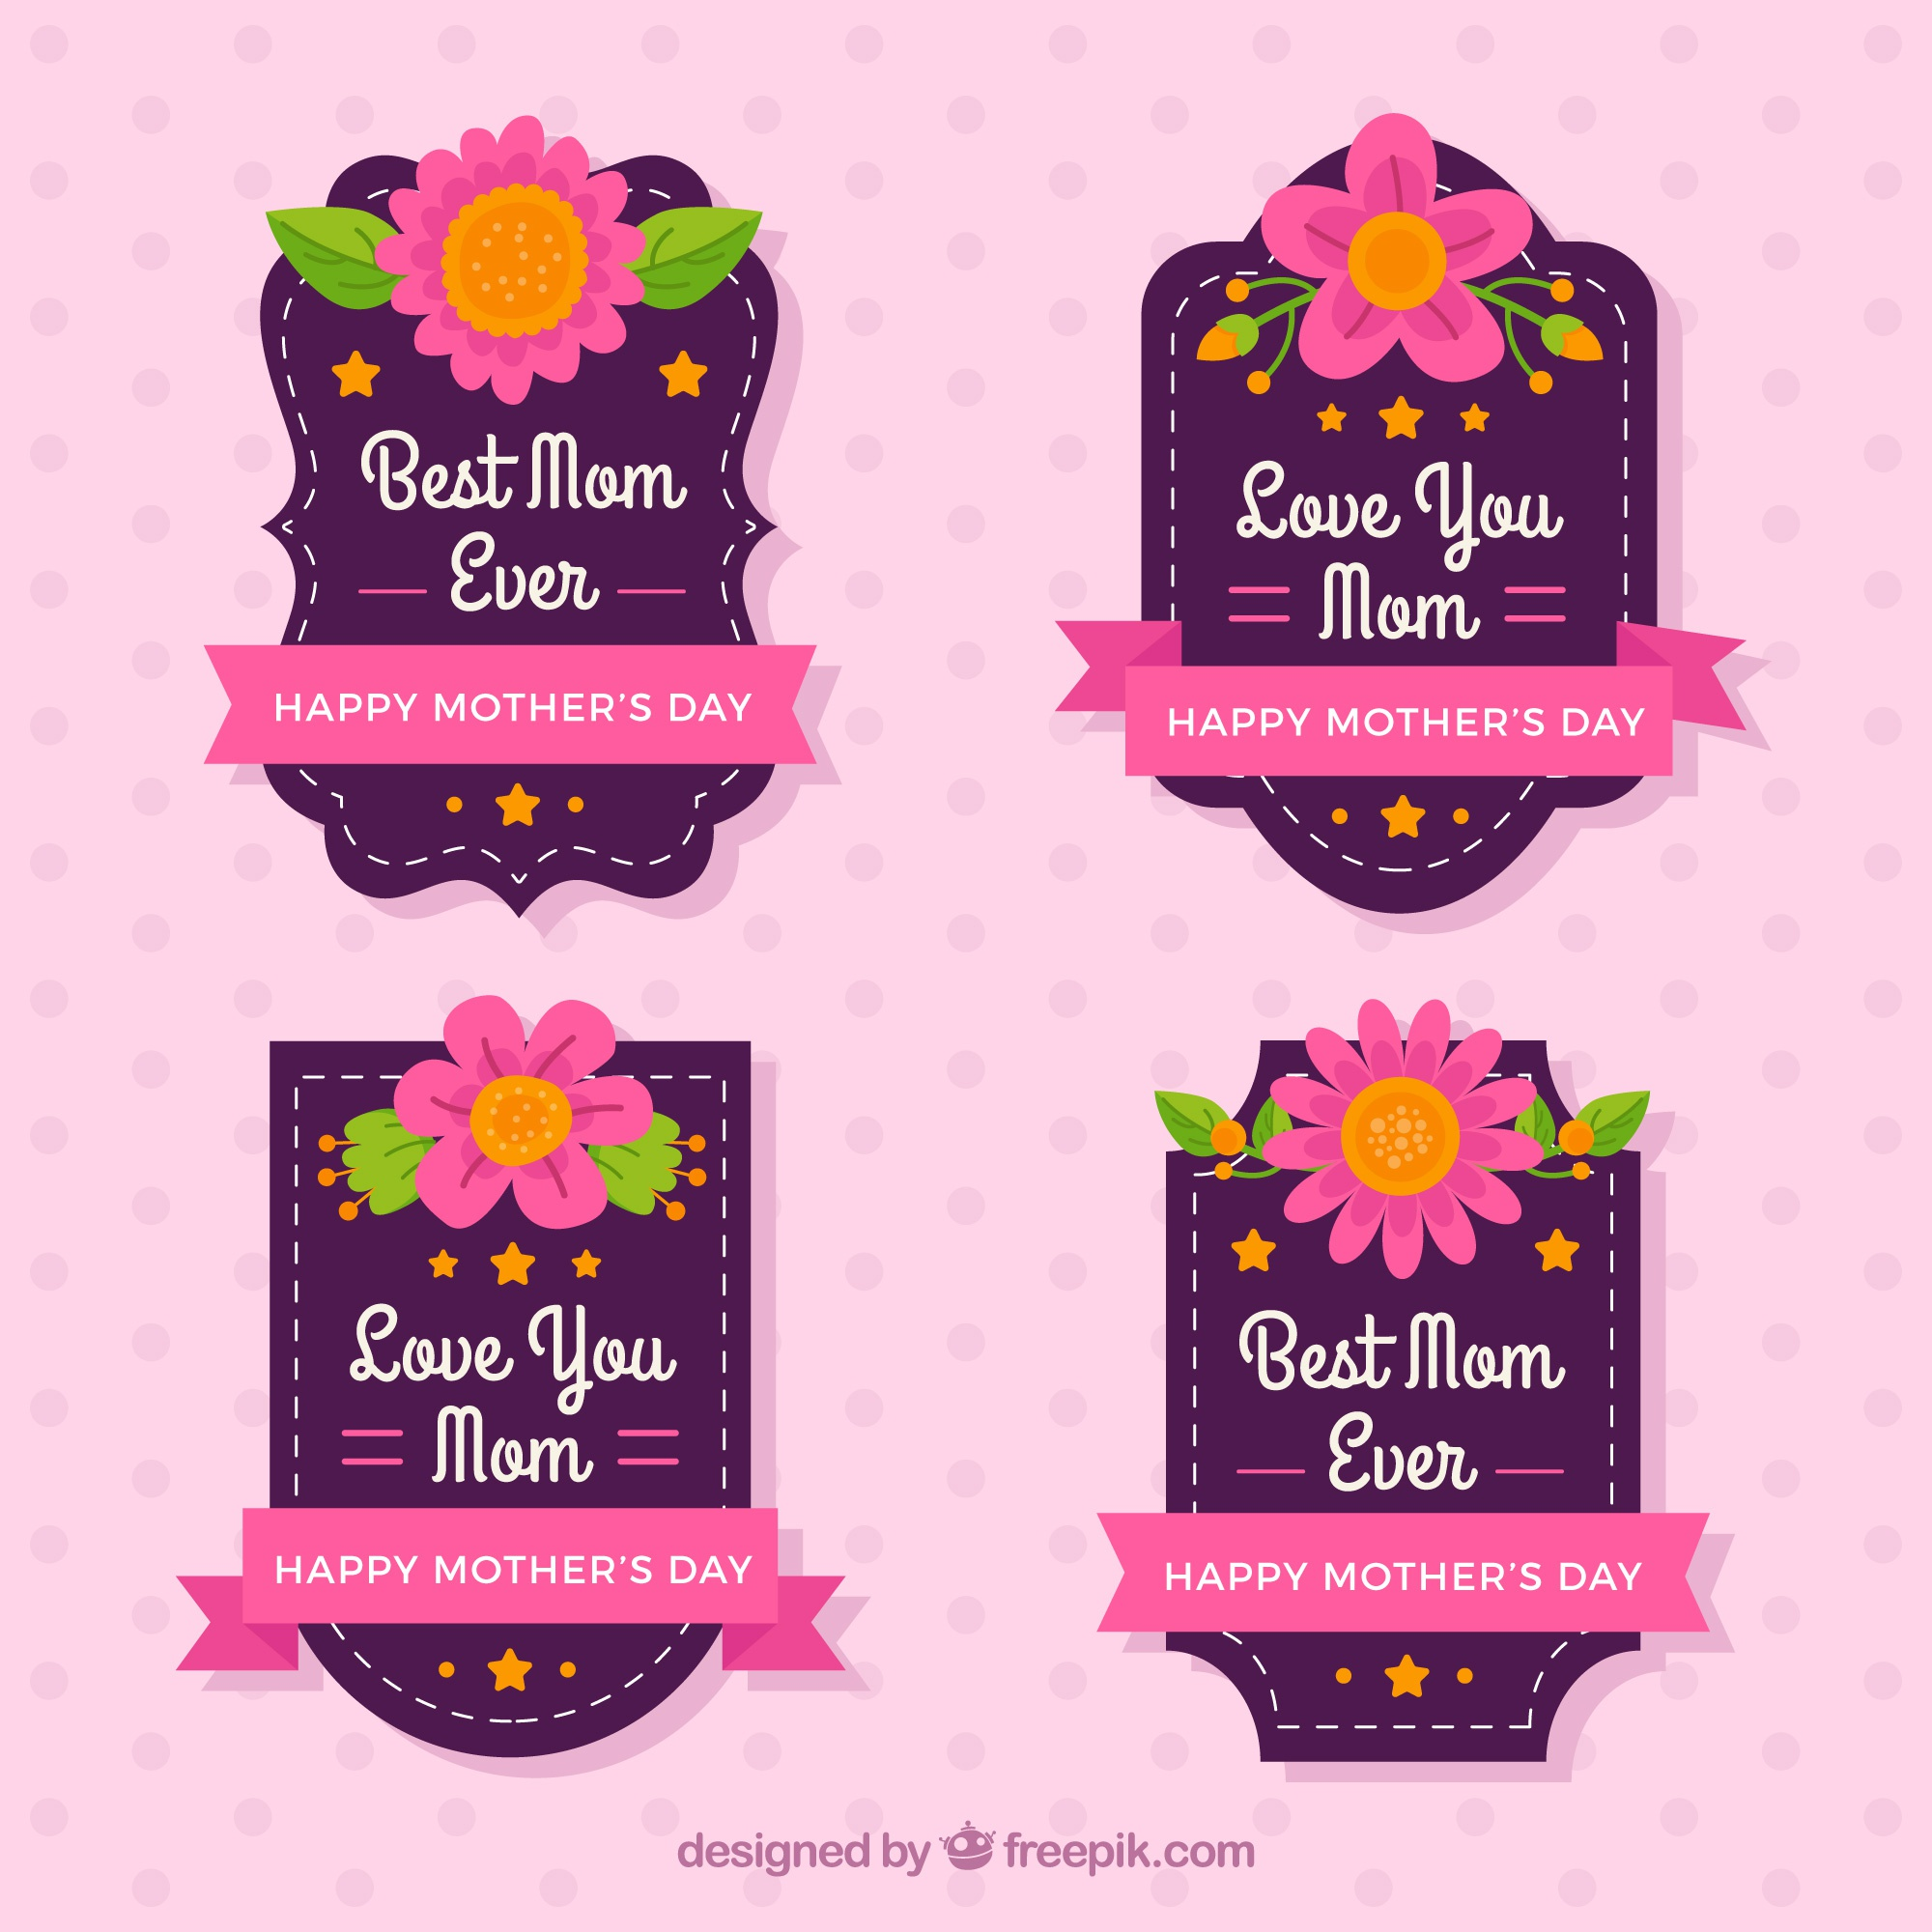 Fantastic mother's day badges with pink ribbons and flowers